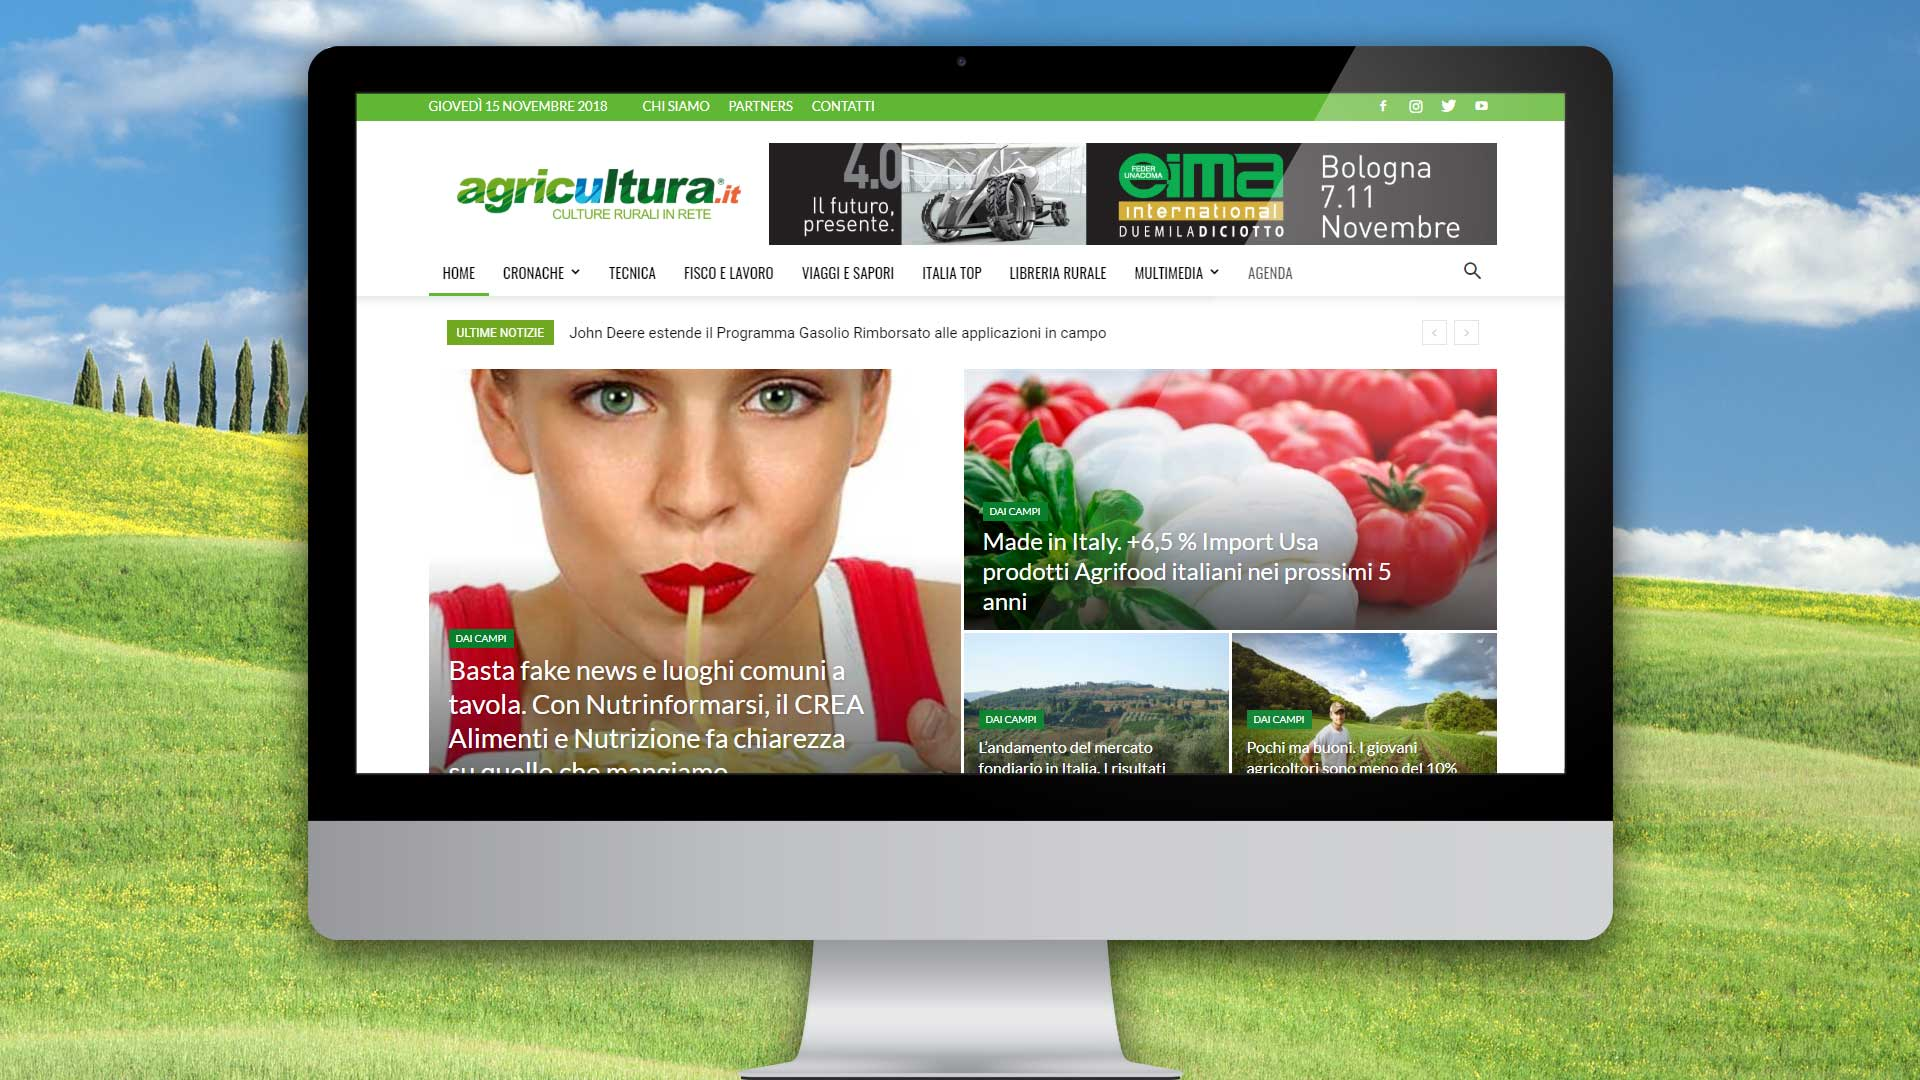 Agricultura.it